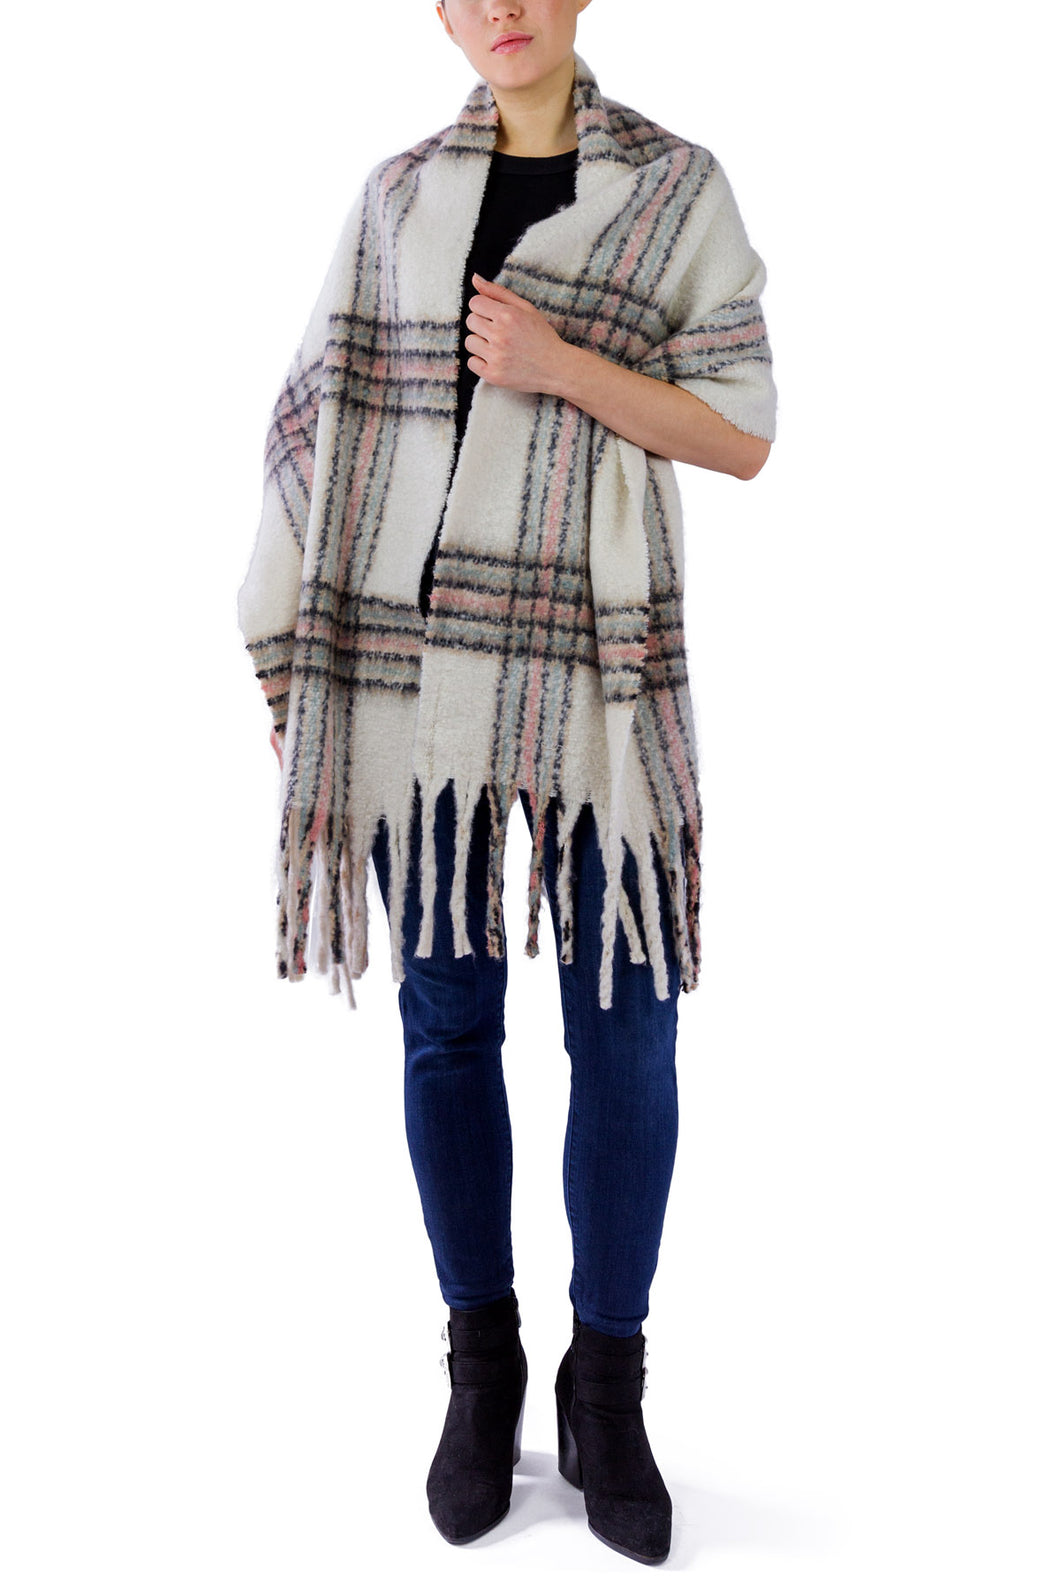 Plaid Noodle Fringe Scarf - Just Jamie